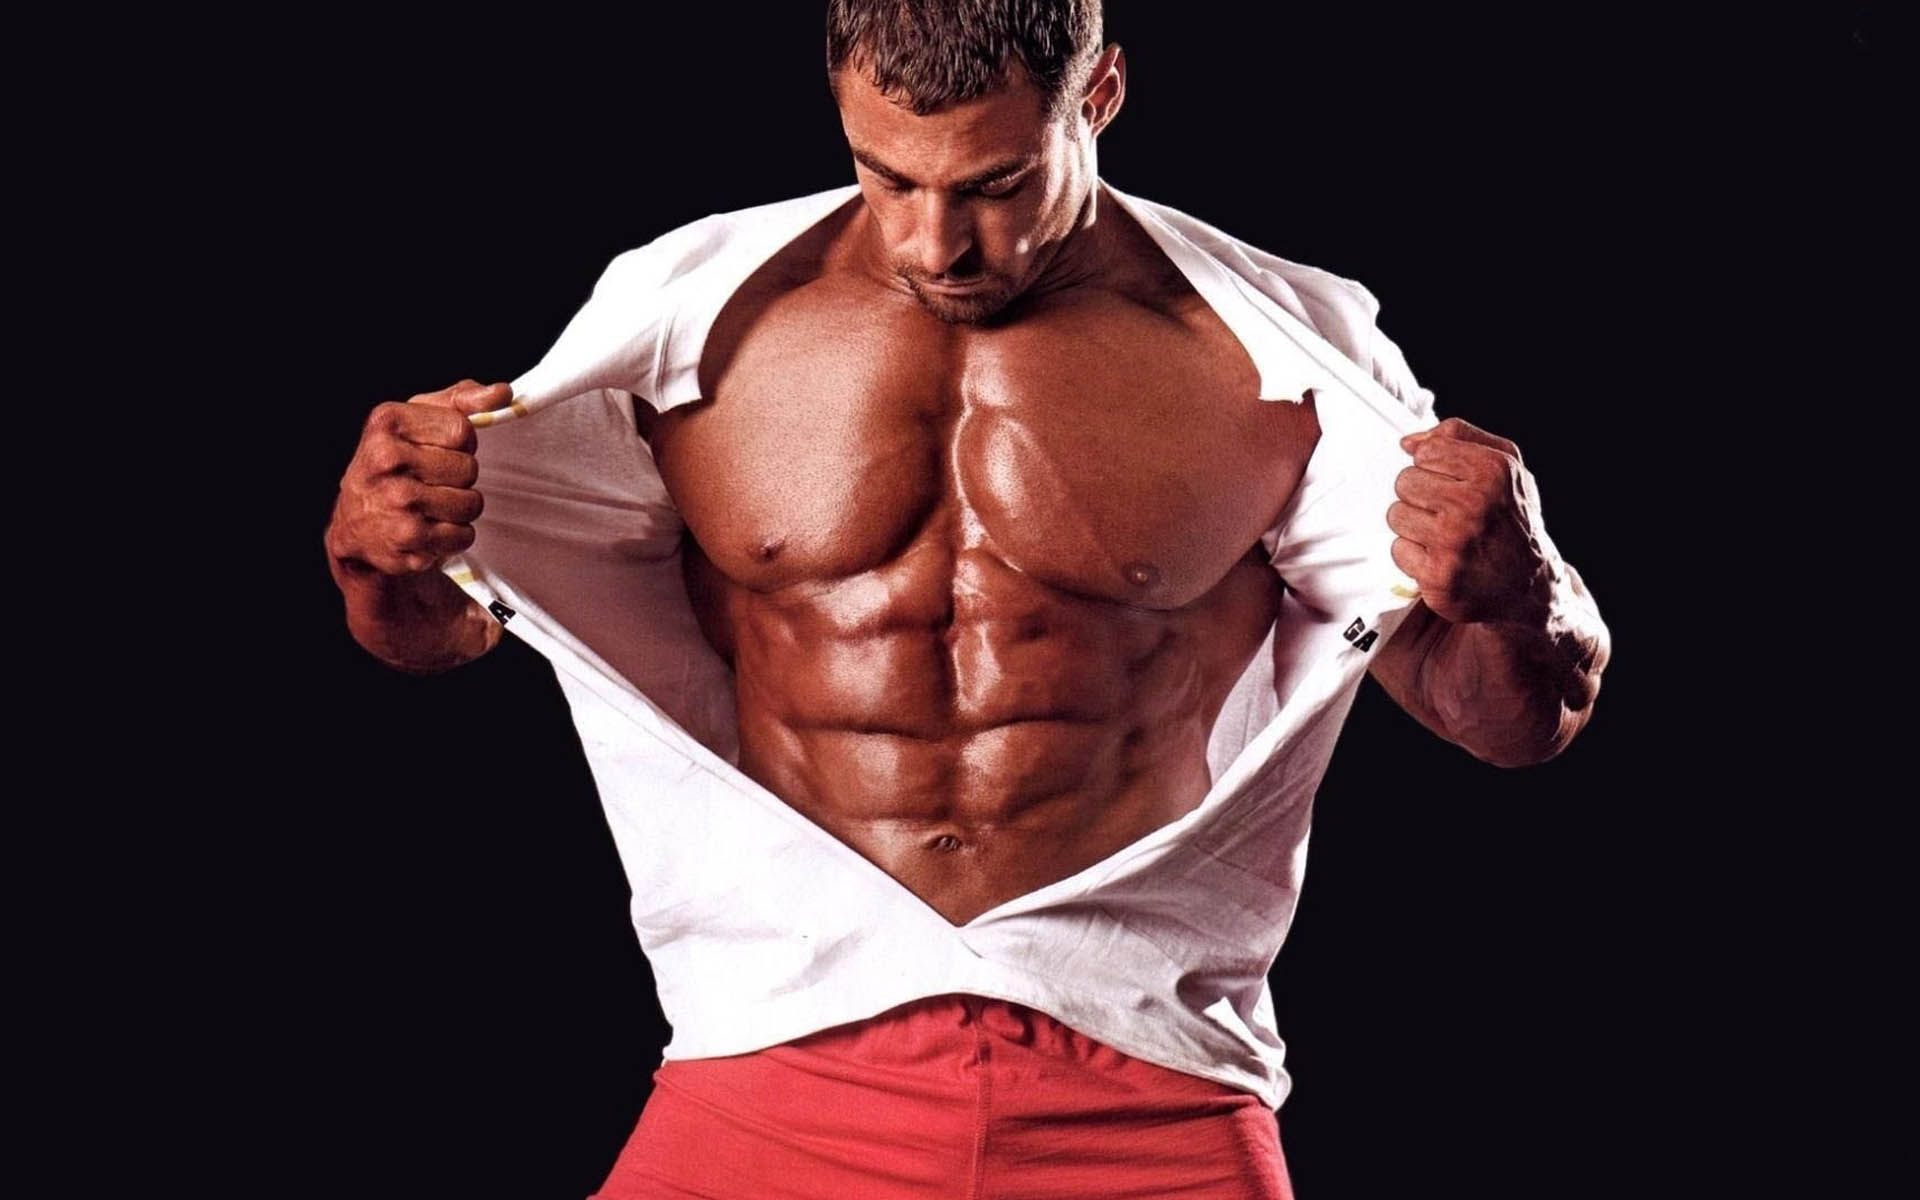 Bodybuilding HD Wallpapers & Pictures